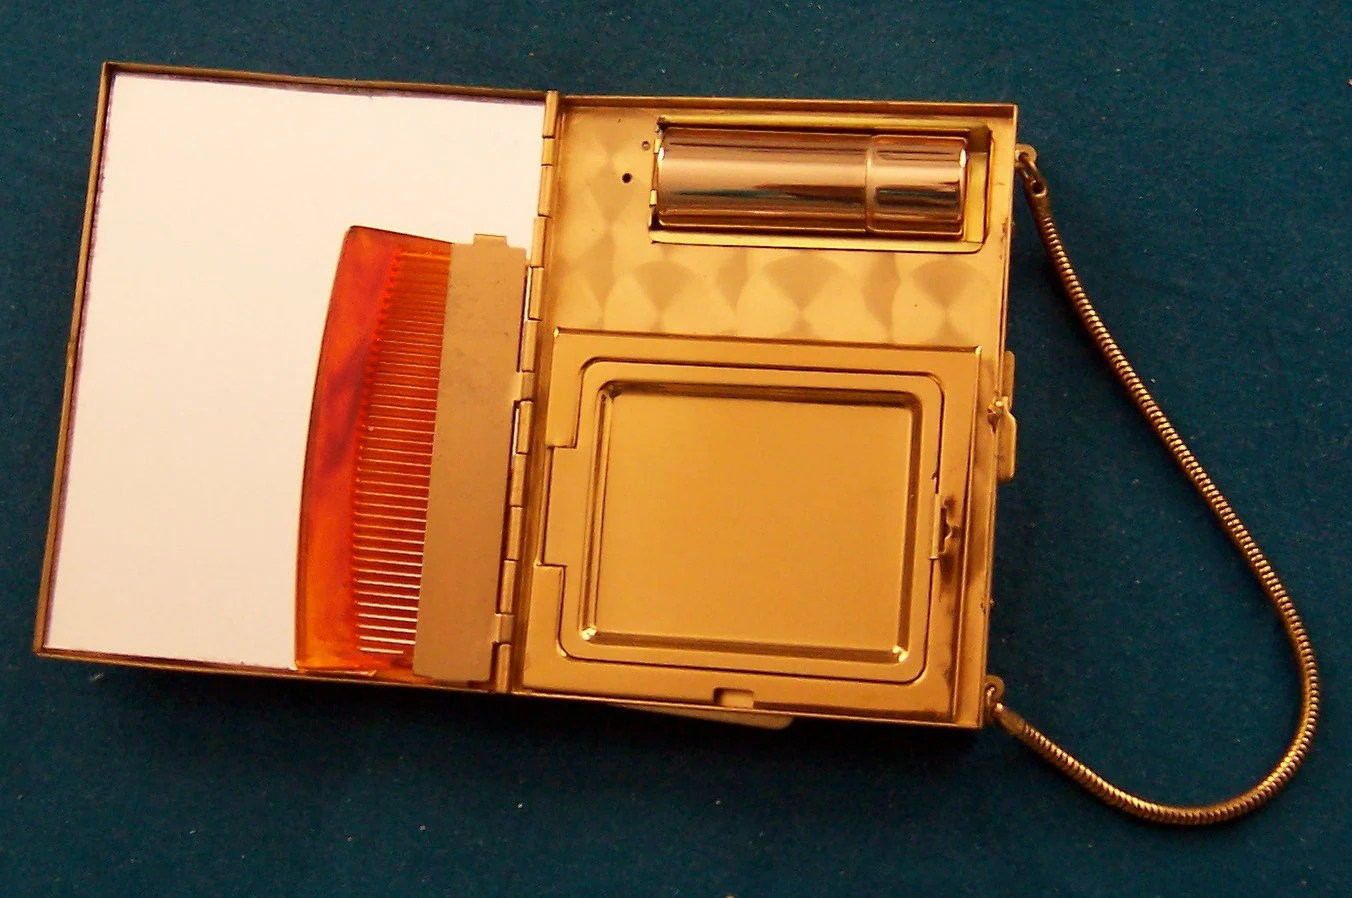 vintage 1930s gold evening purse/bag for makeup, cards, cigarettes- a CLASSIC